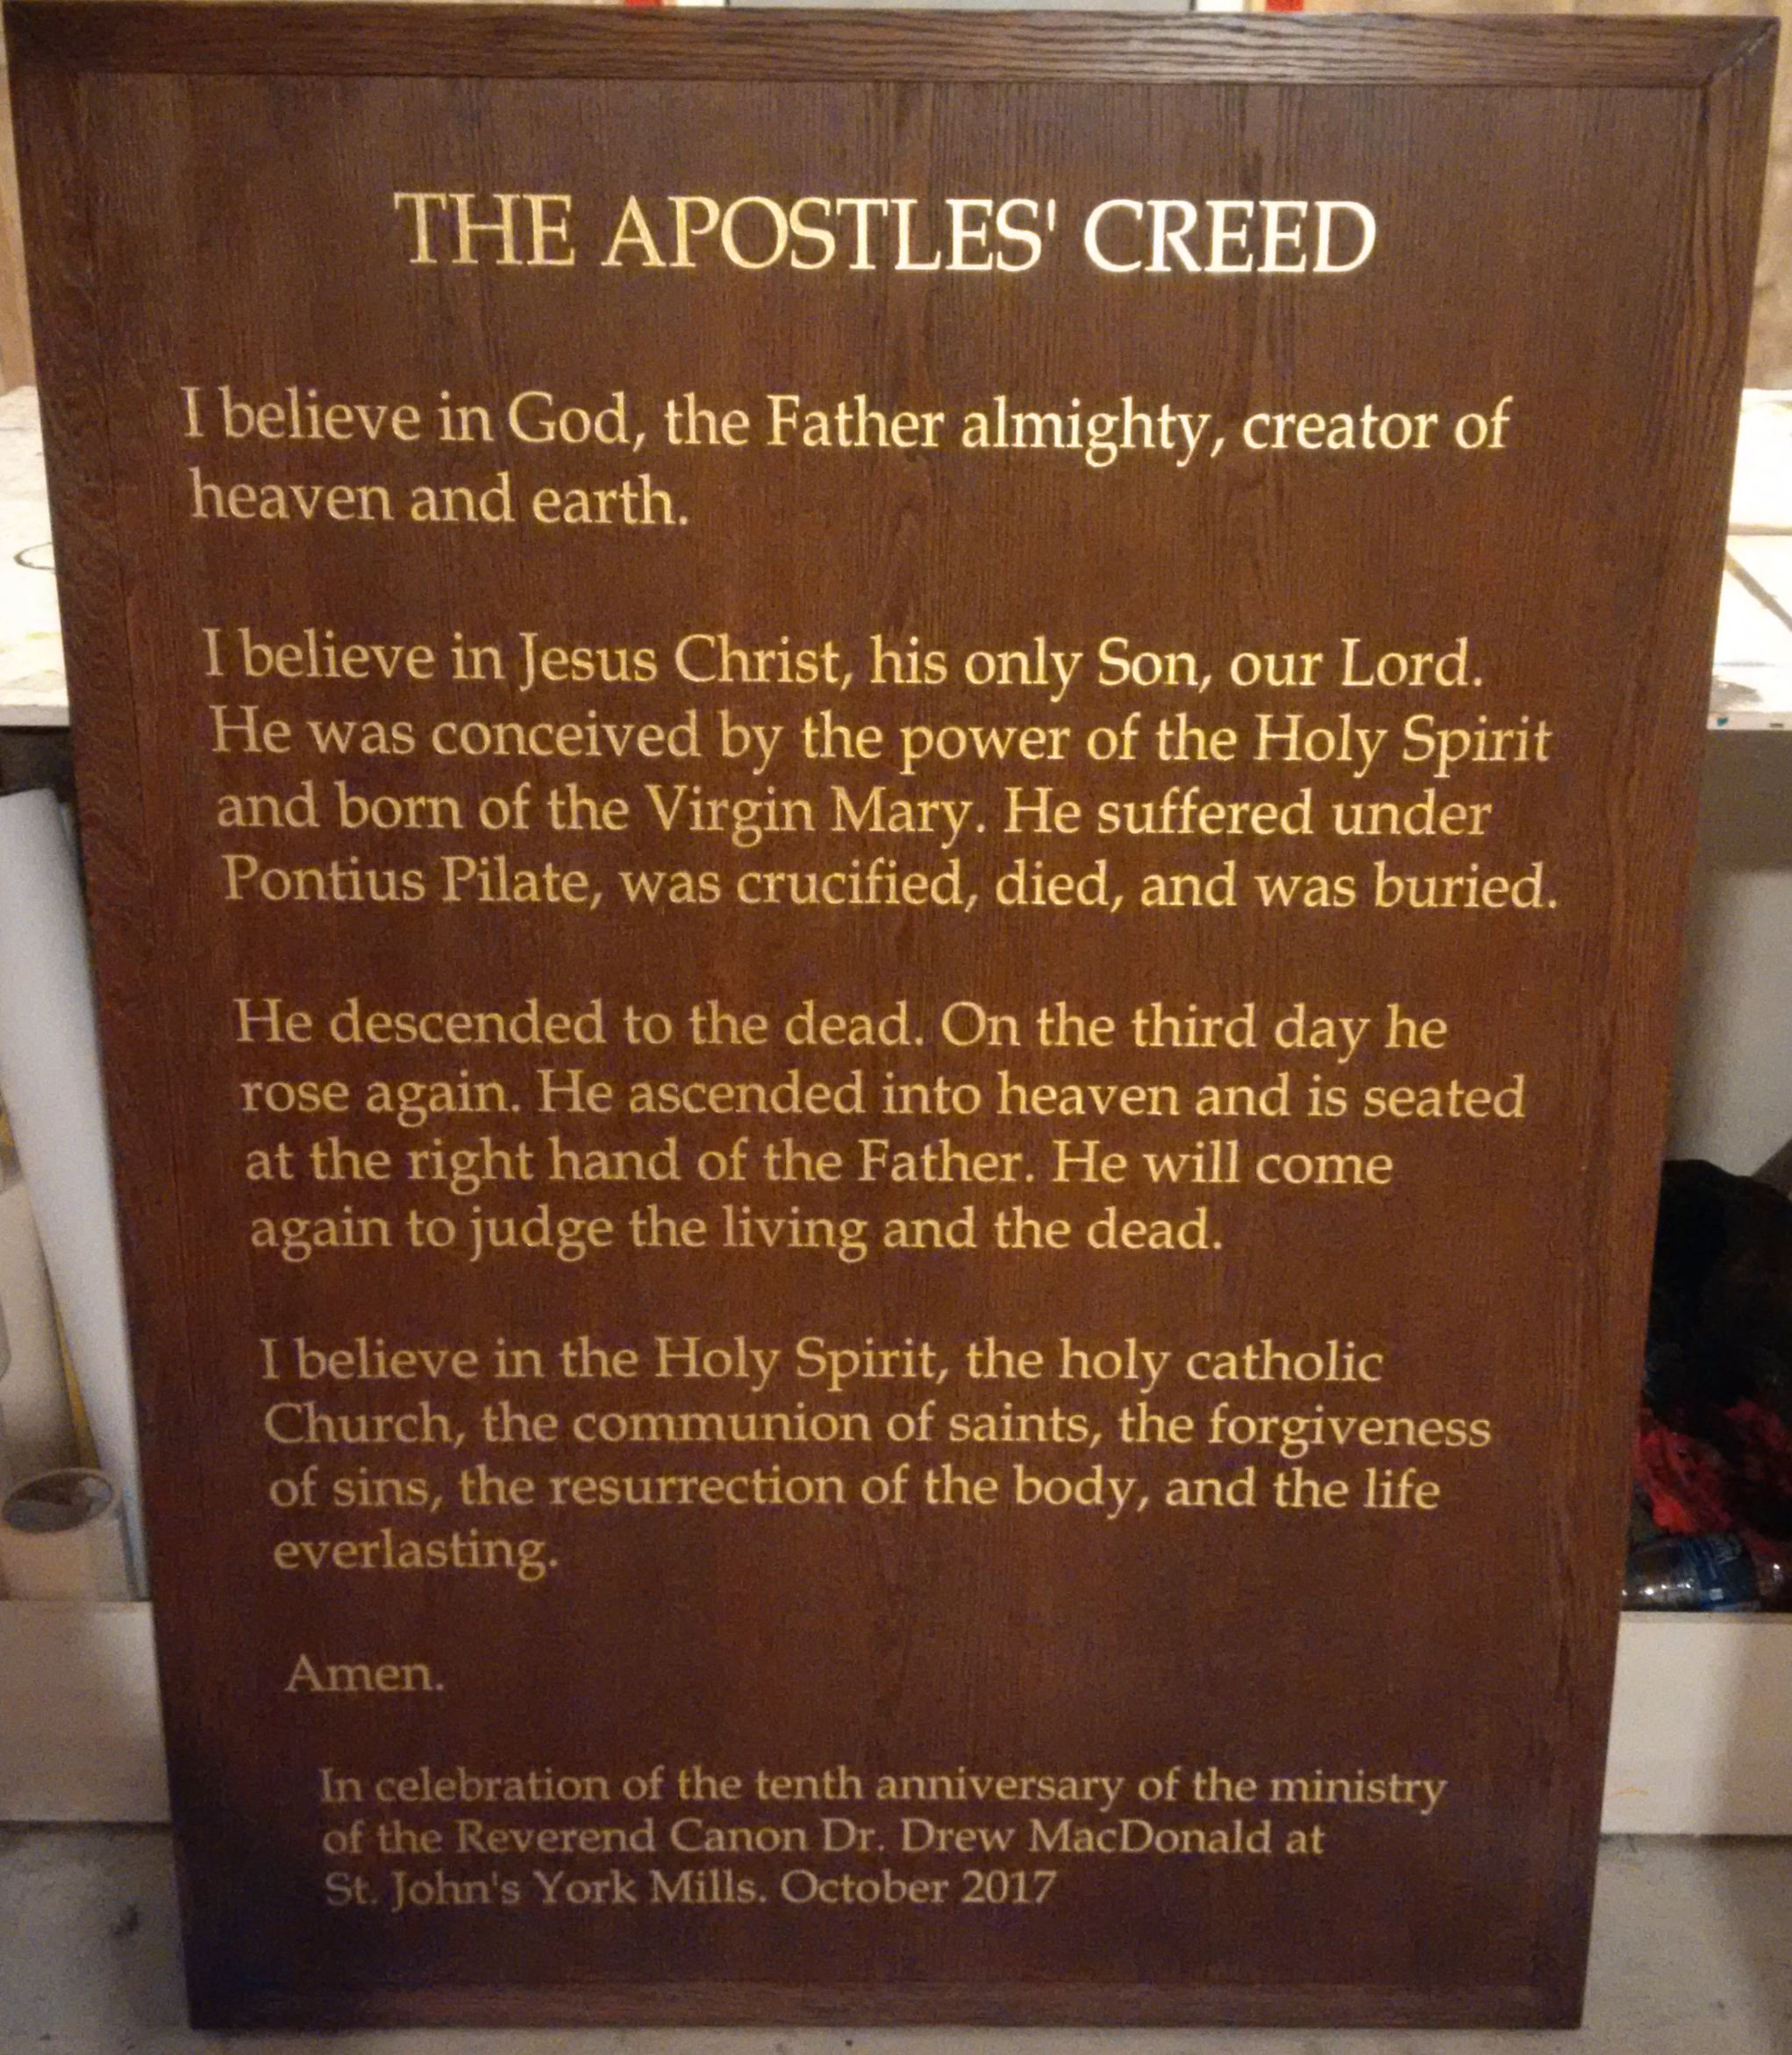 The Apostles Creed in gold leaf on polished wooden sign